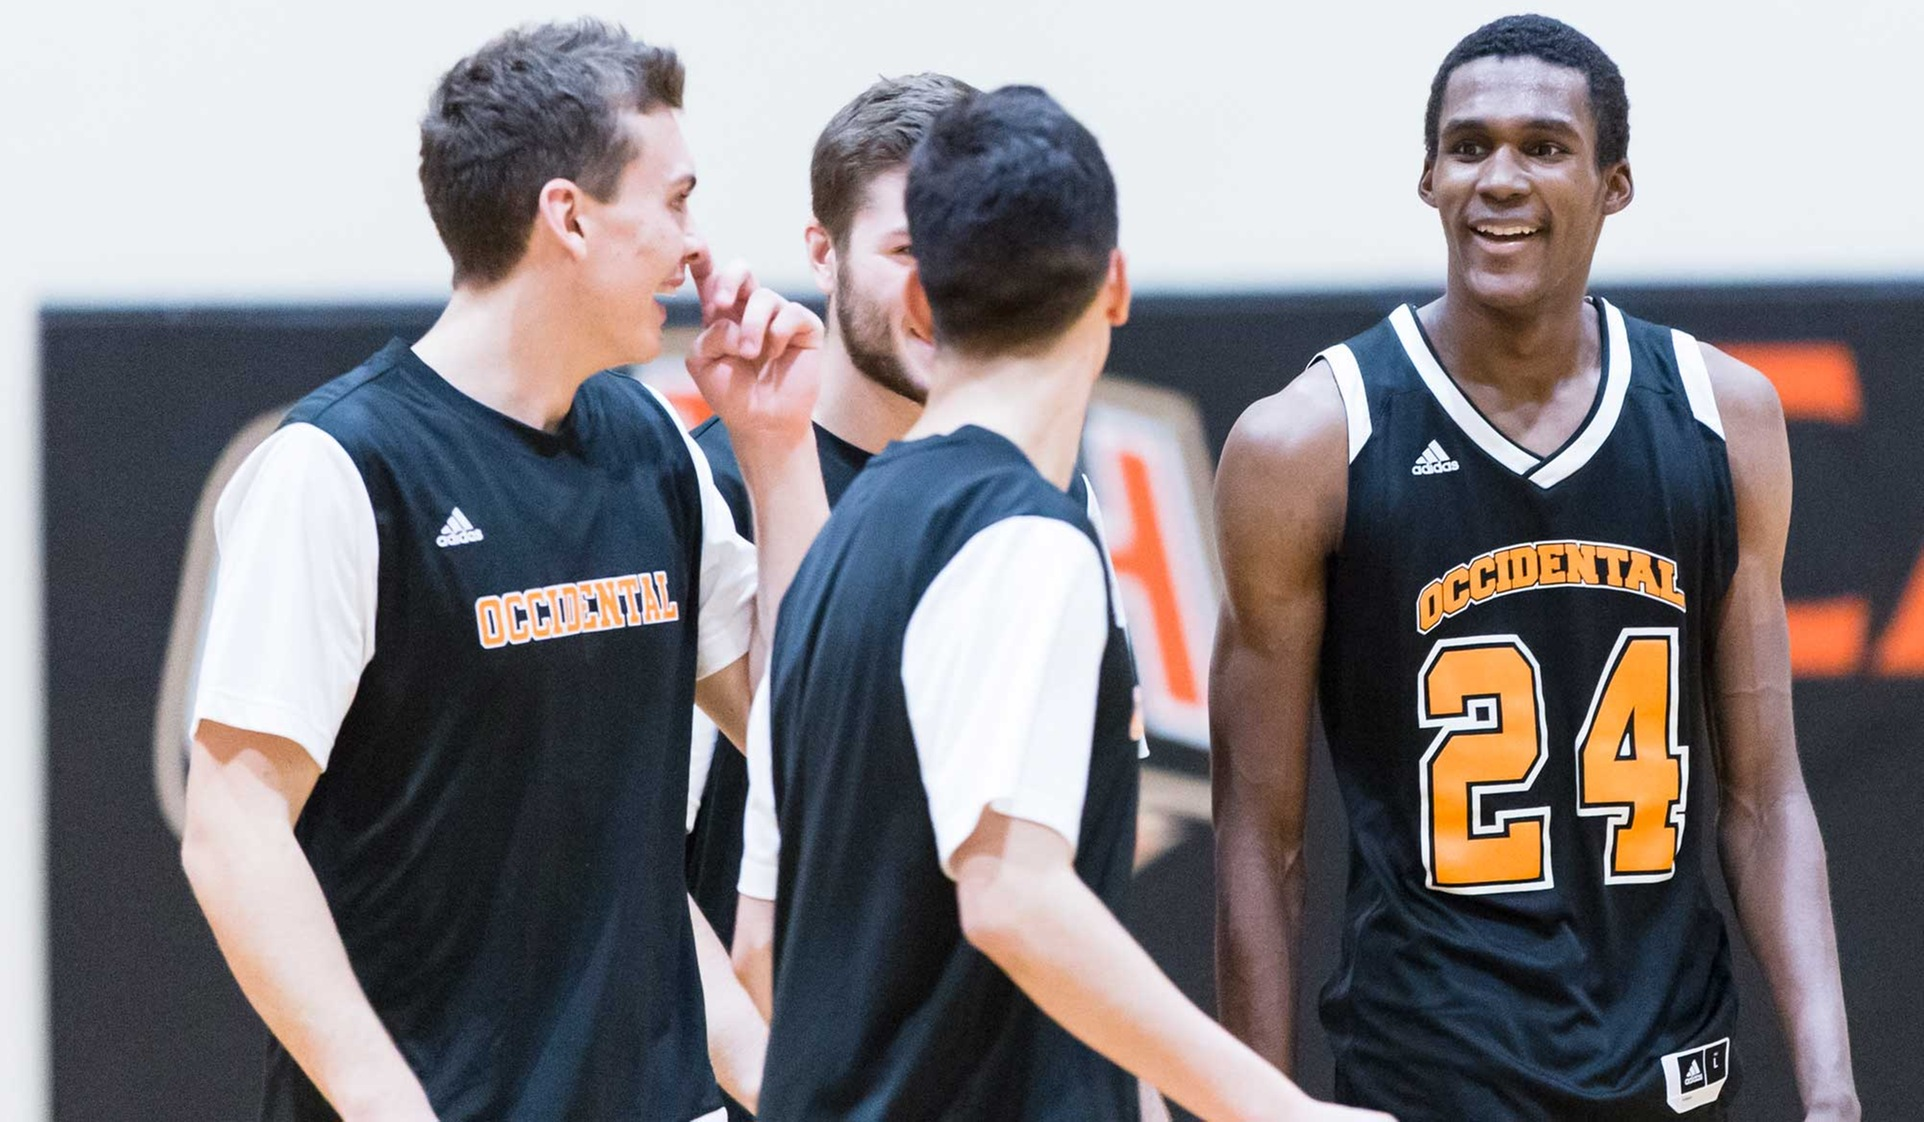 Baines Surpasses 1,000 at Oxy in CLU Win